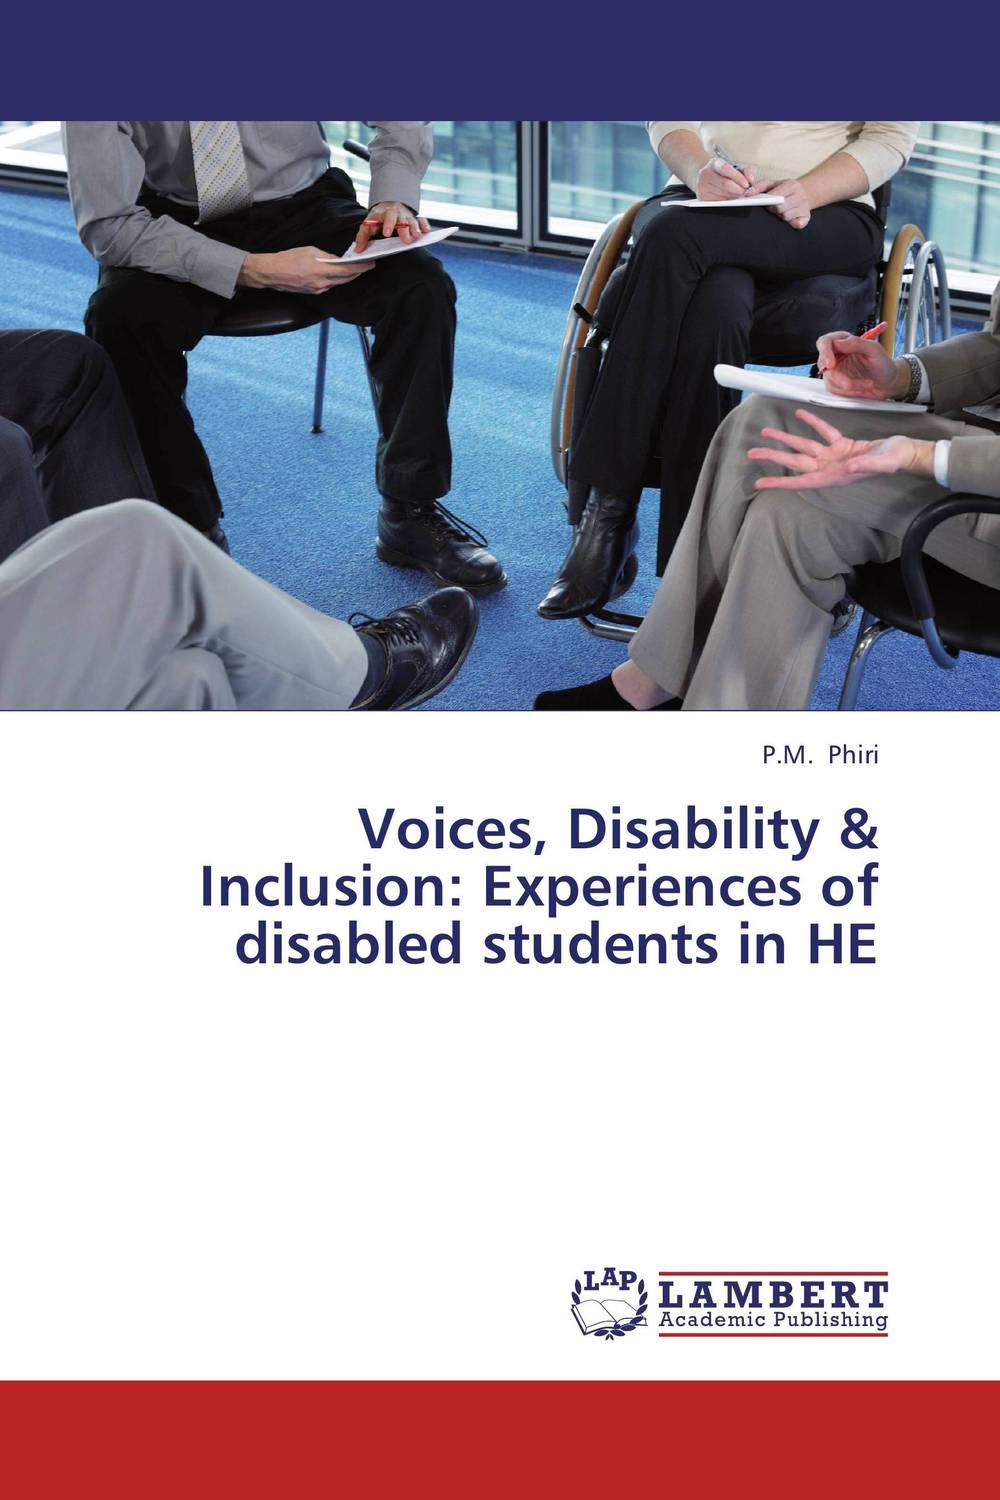 Voices, Disability & Inclusion: Experiences of disabled students in HE white amur frenzy voices in the head fear and struggle with neither